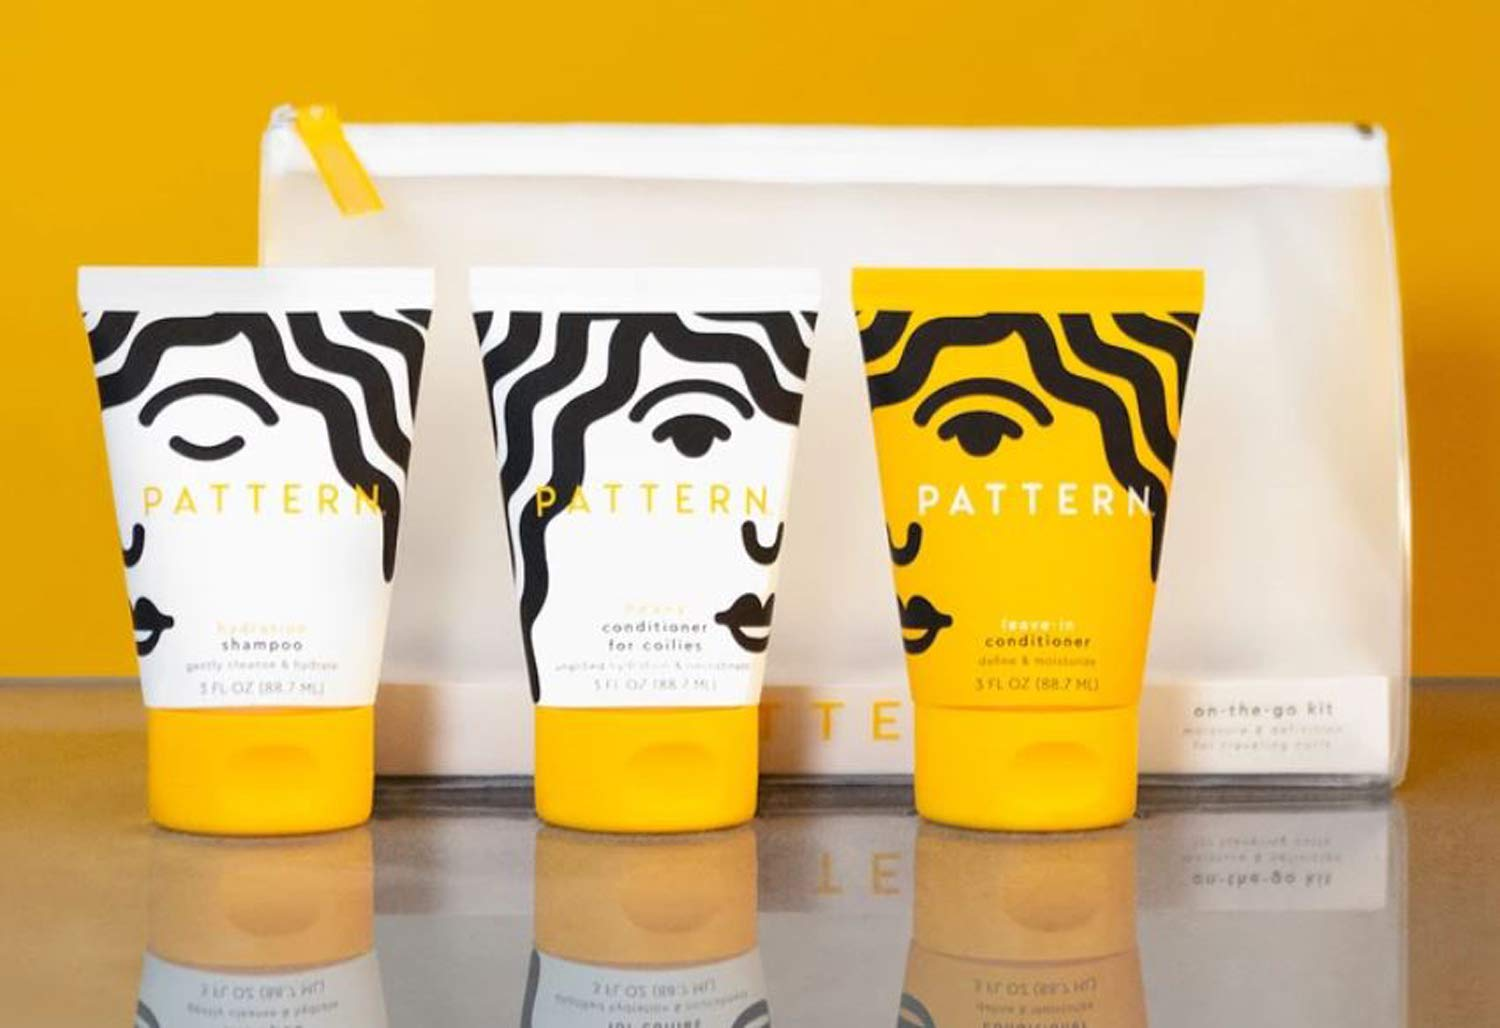 Pattern On-The-Go Hair Care Kit! Includes Hydration Shampoo, Heavy Conditioner And Leave-In Conditioner! Shampoo And Conditioner For Curly Hair! Perfect For Curlies, Coilies & Tight Texture Hair!